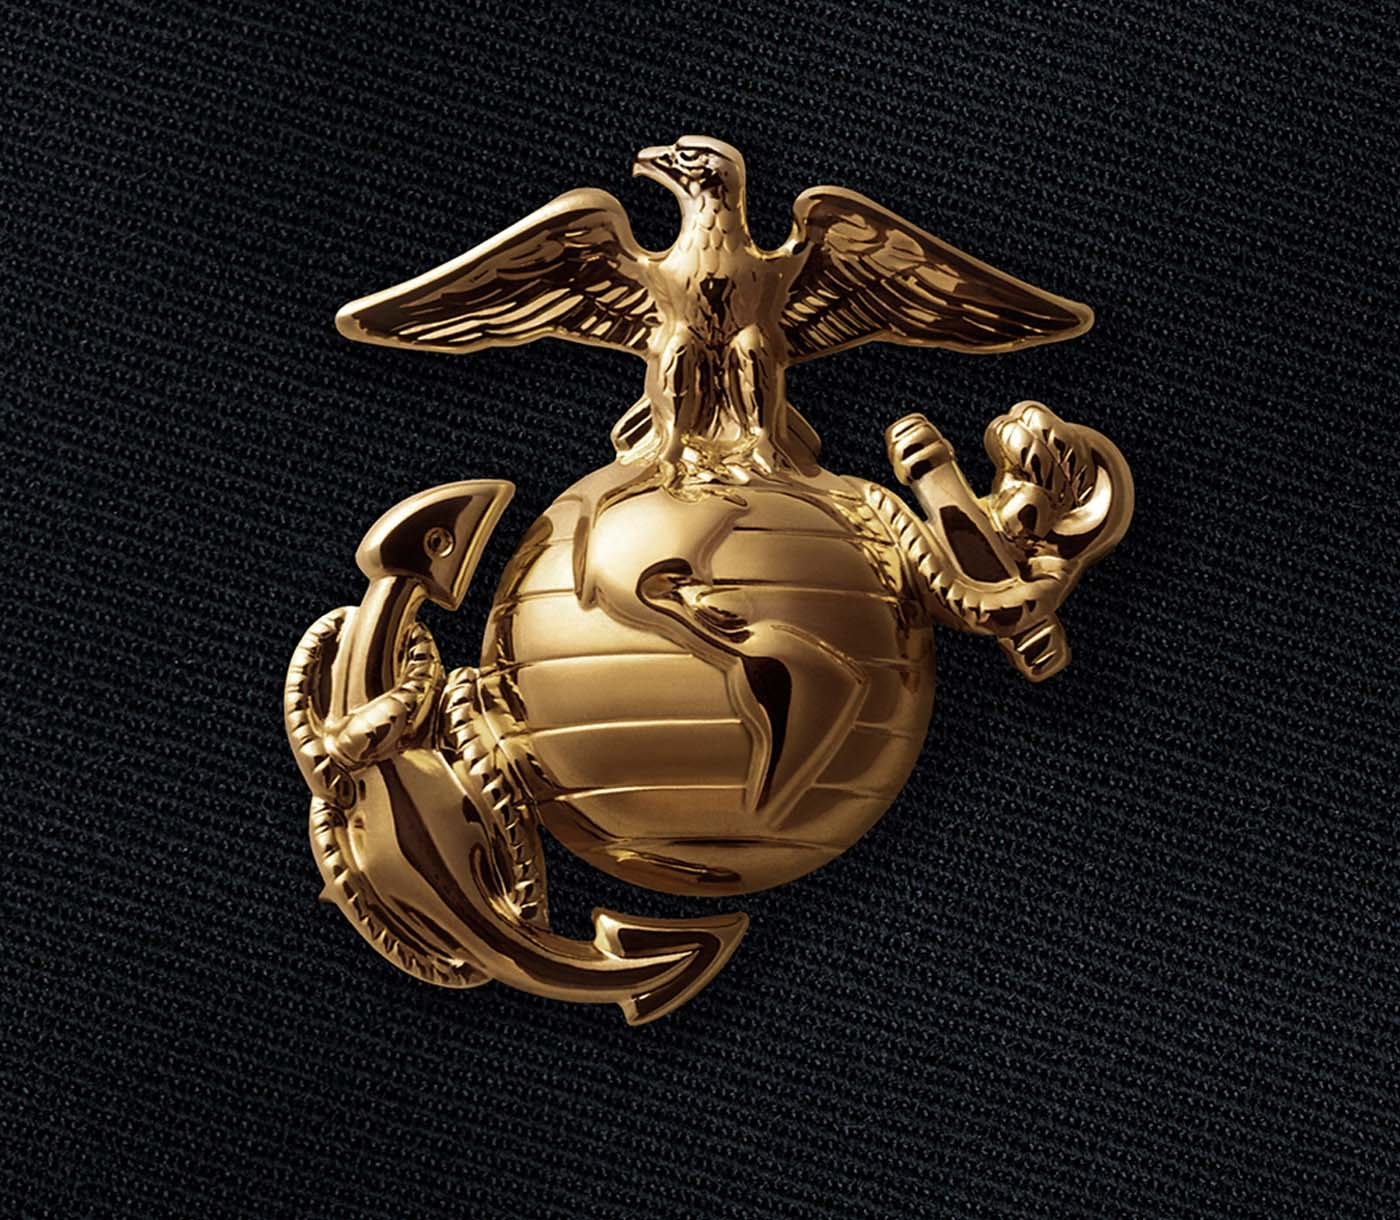 The Eagle Globe and Anchor emblem of an enlisted Marine.